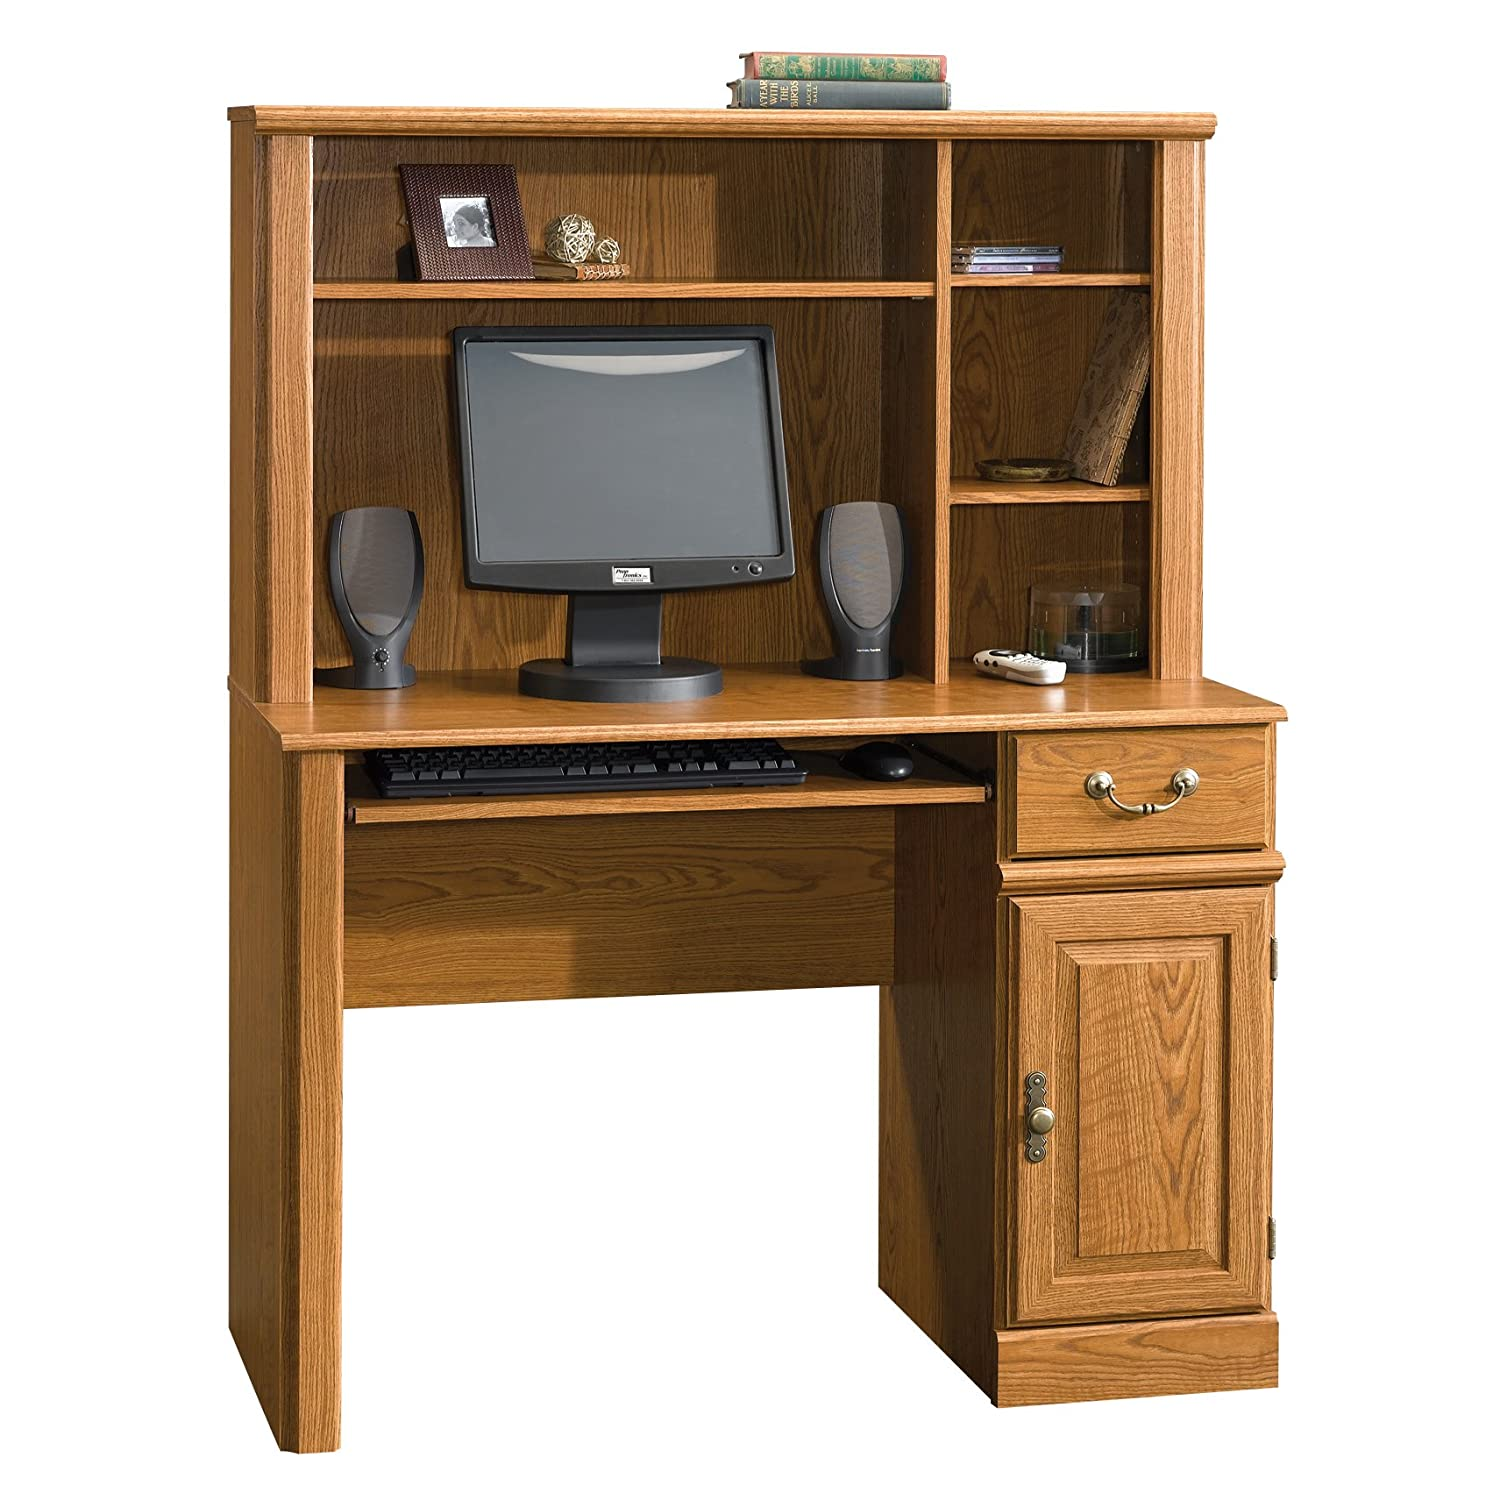 Amazoncom Sauder Orchard Hills Computer Desk With Hutch - Computer desk with hutch plans